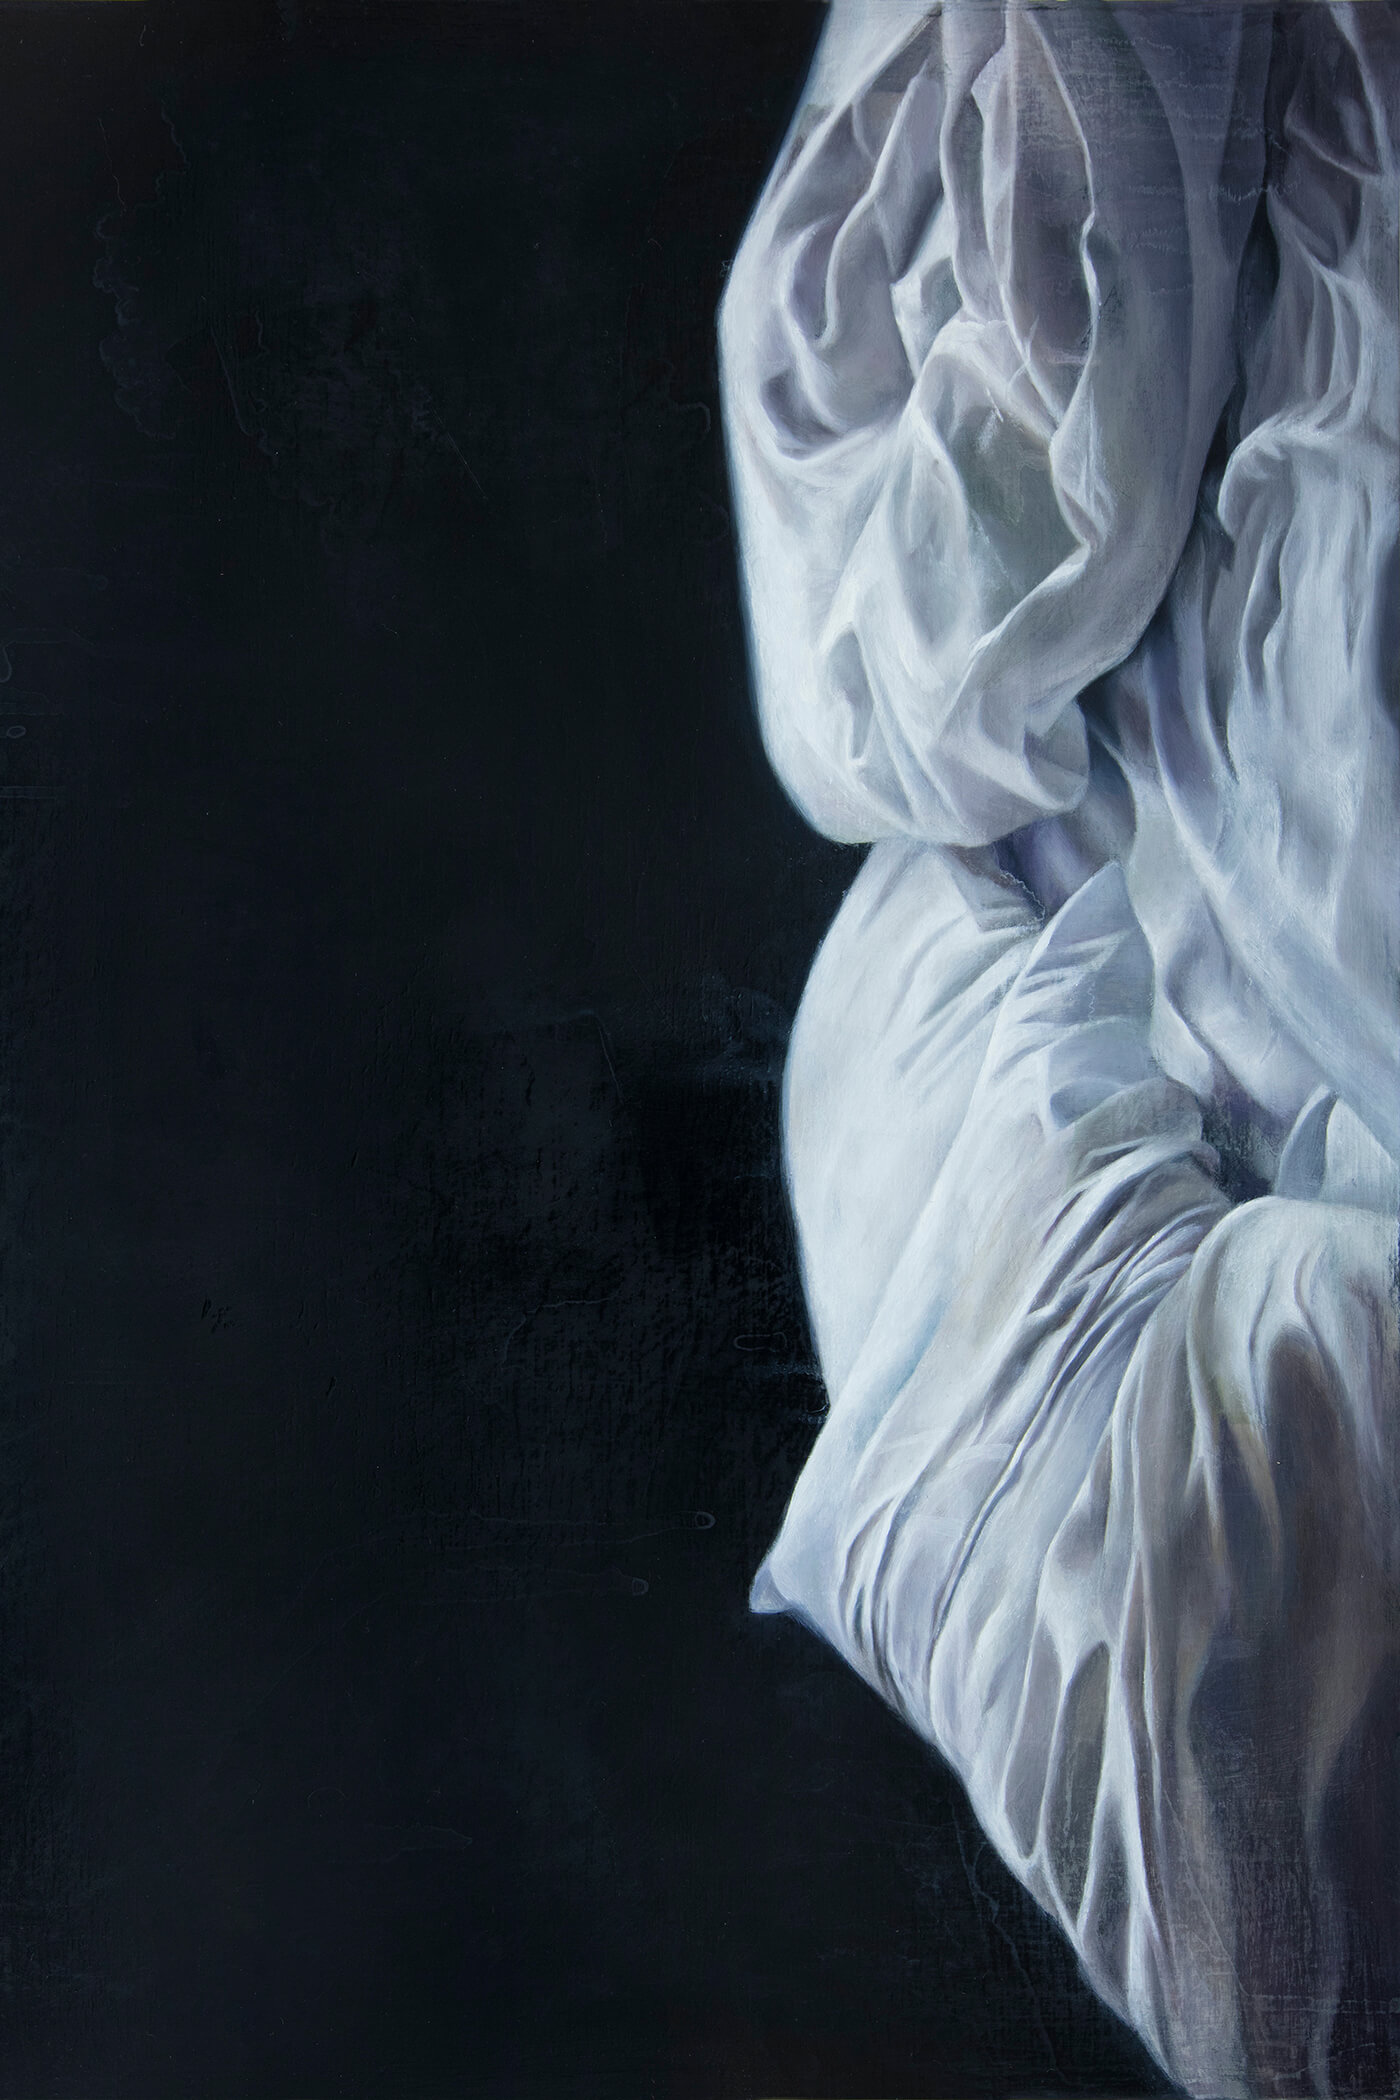 A painting of a portion of an empty bed against a dark black backround. Crumpled pillows and sheets rendered realistically in white and gray. Sheets and pillows indicate someone once slept there.